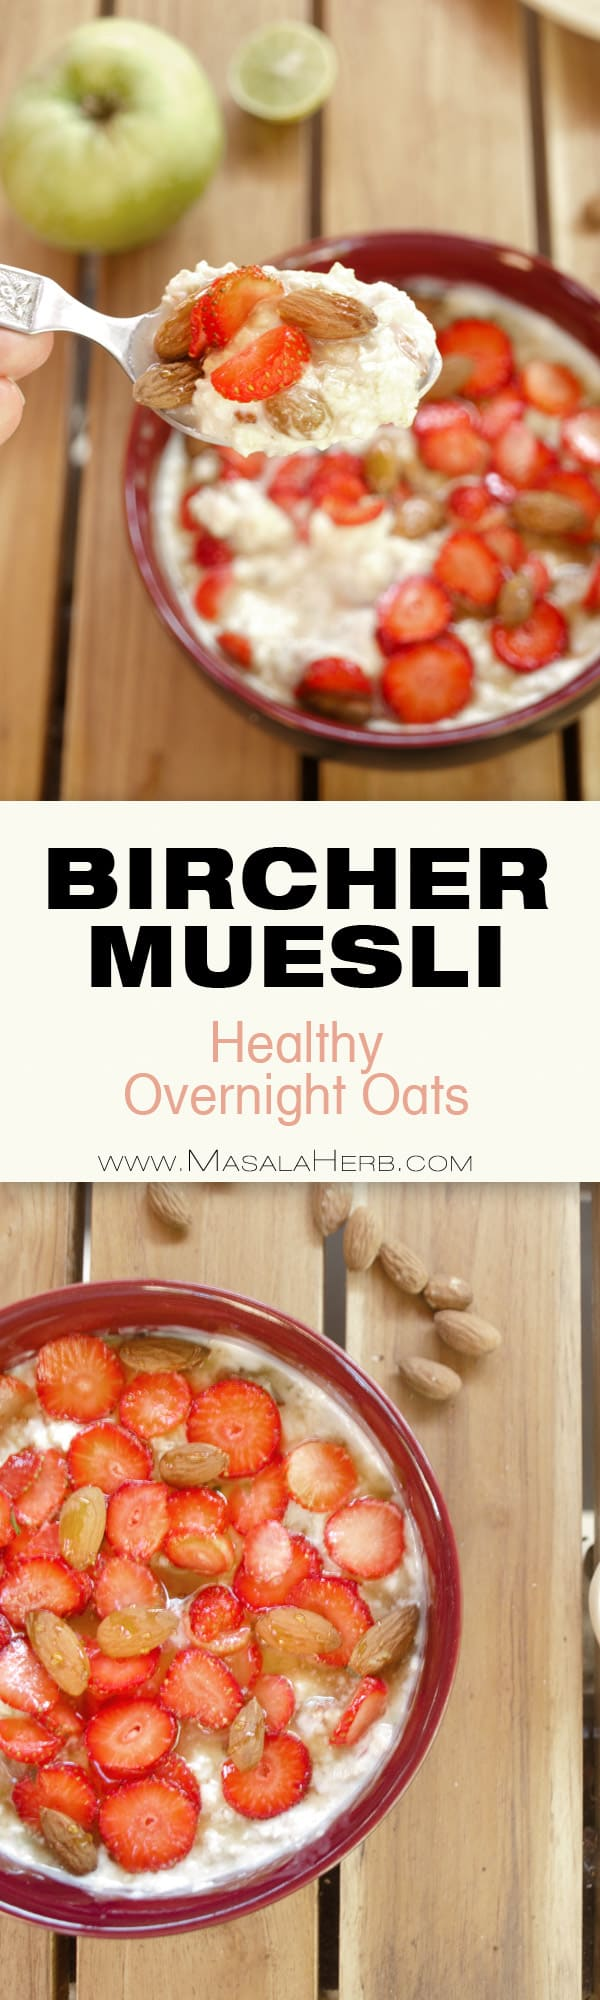 Life-changing Bircher Muesli - Healthy Overnight oats [Swiss Recipe] with fresh fruits, oats, honey, nut etc. Makes a great after workout breakfast www.MasalaHerb.com #overnightoats #muesli #nutritious #masalaherb